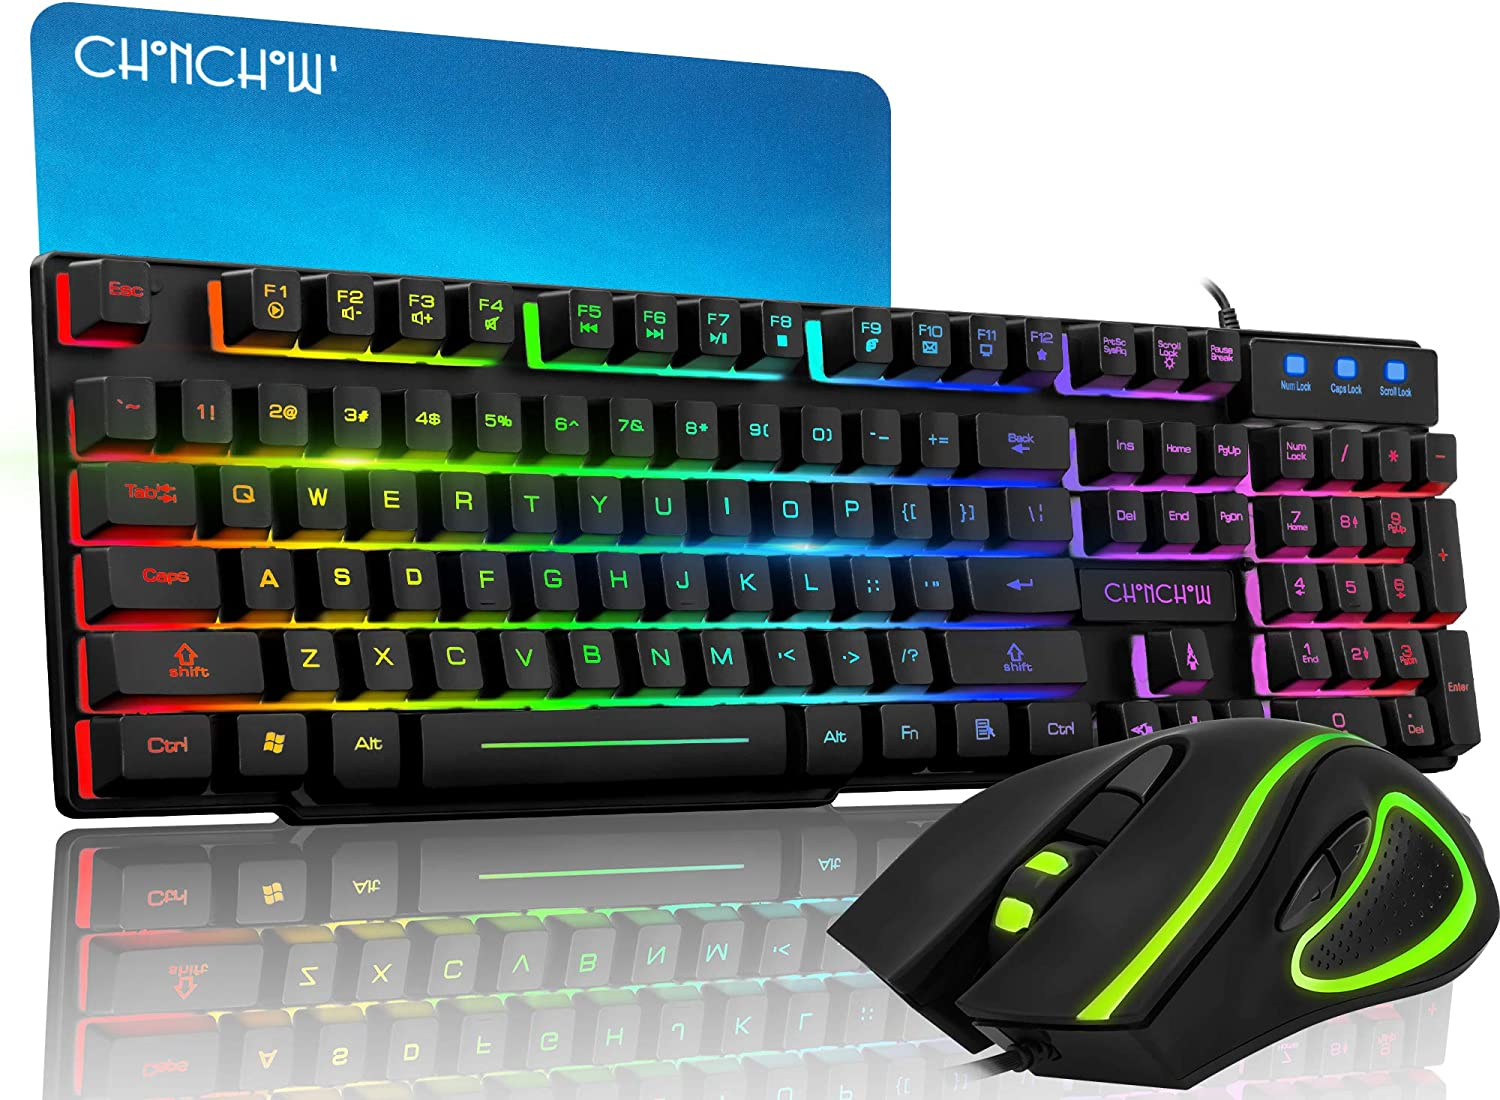 CHONCHOW Wired Gaming Keyboard and Mouse Combo LED Rainbow Light Up Gaming Keyboard RGB Backlit Gaming Mouse 3200DPI Large Mouse Pad for PS4 Windows PC